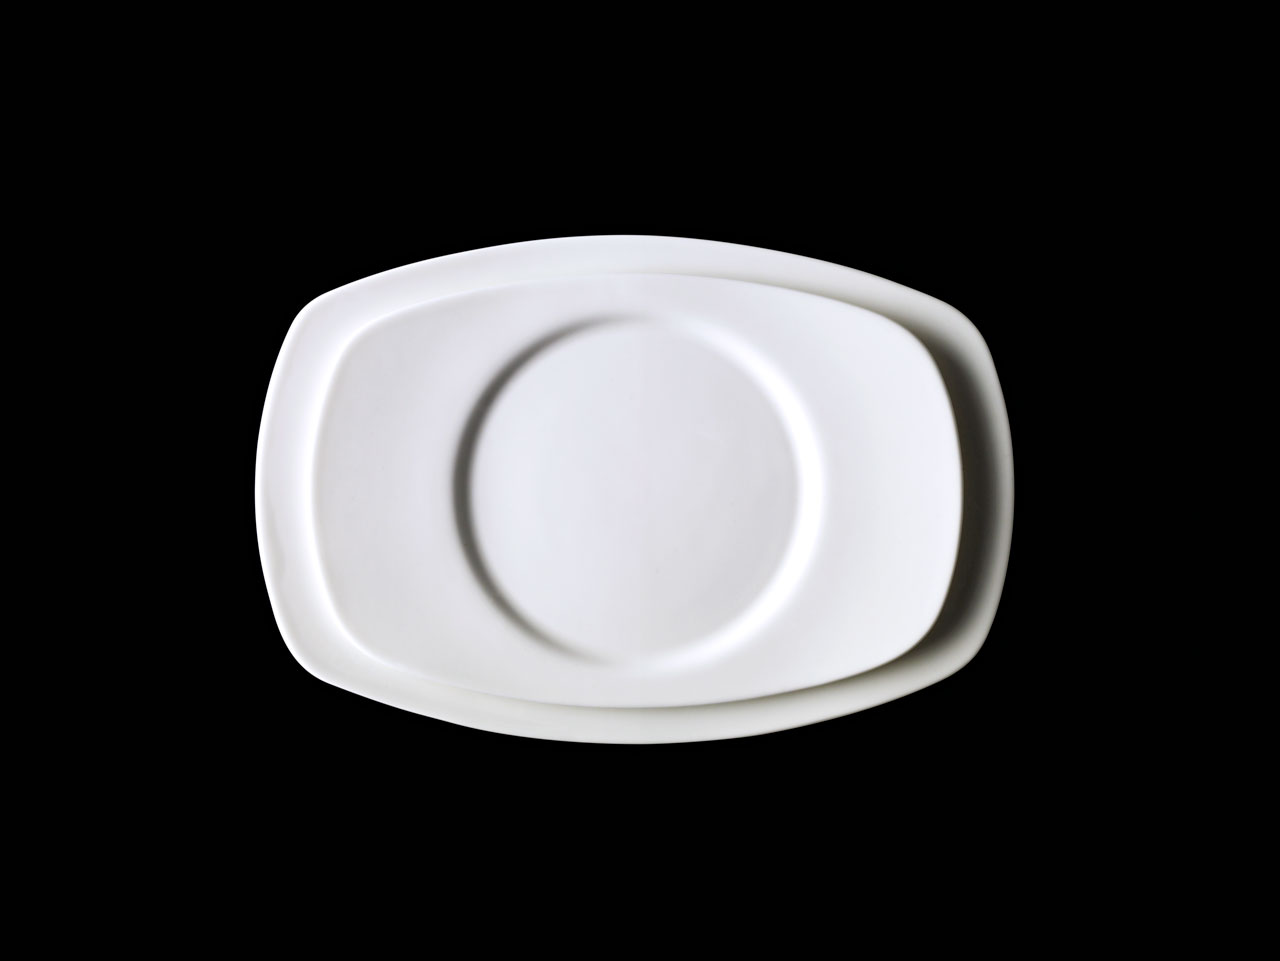 Bent Brandt - TABL white bone china S1 oval saucer on S1 oval plate